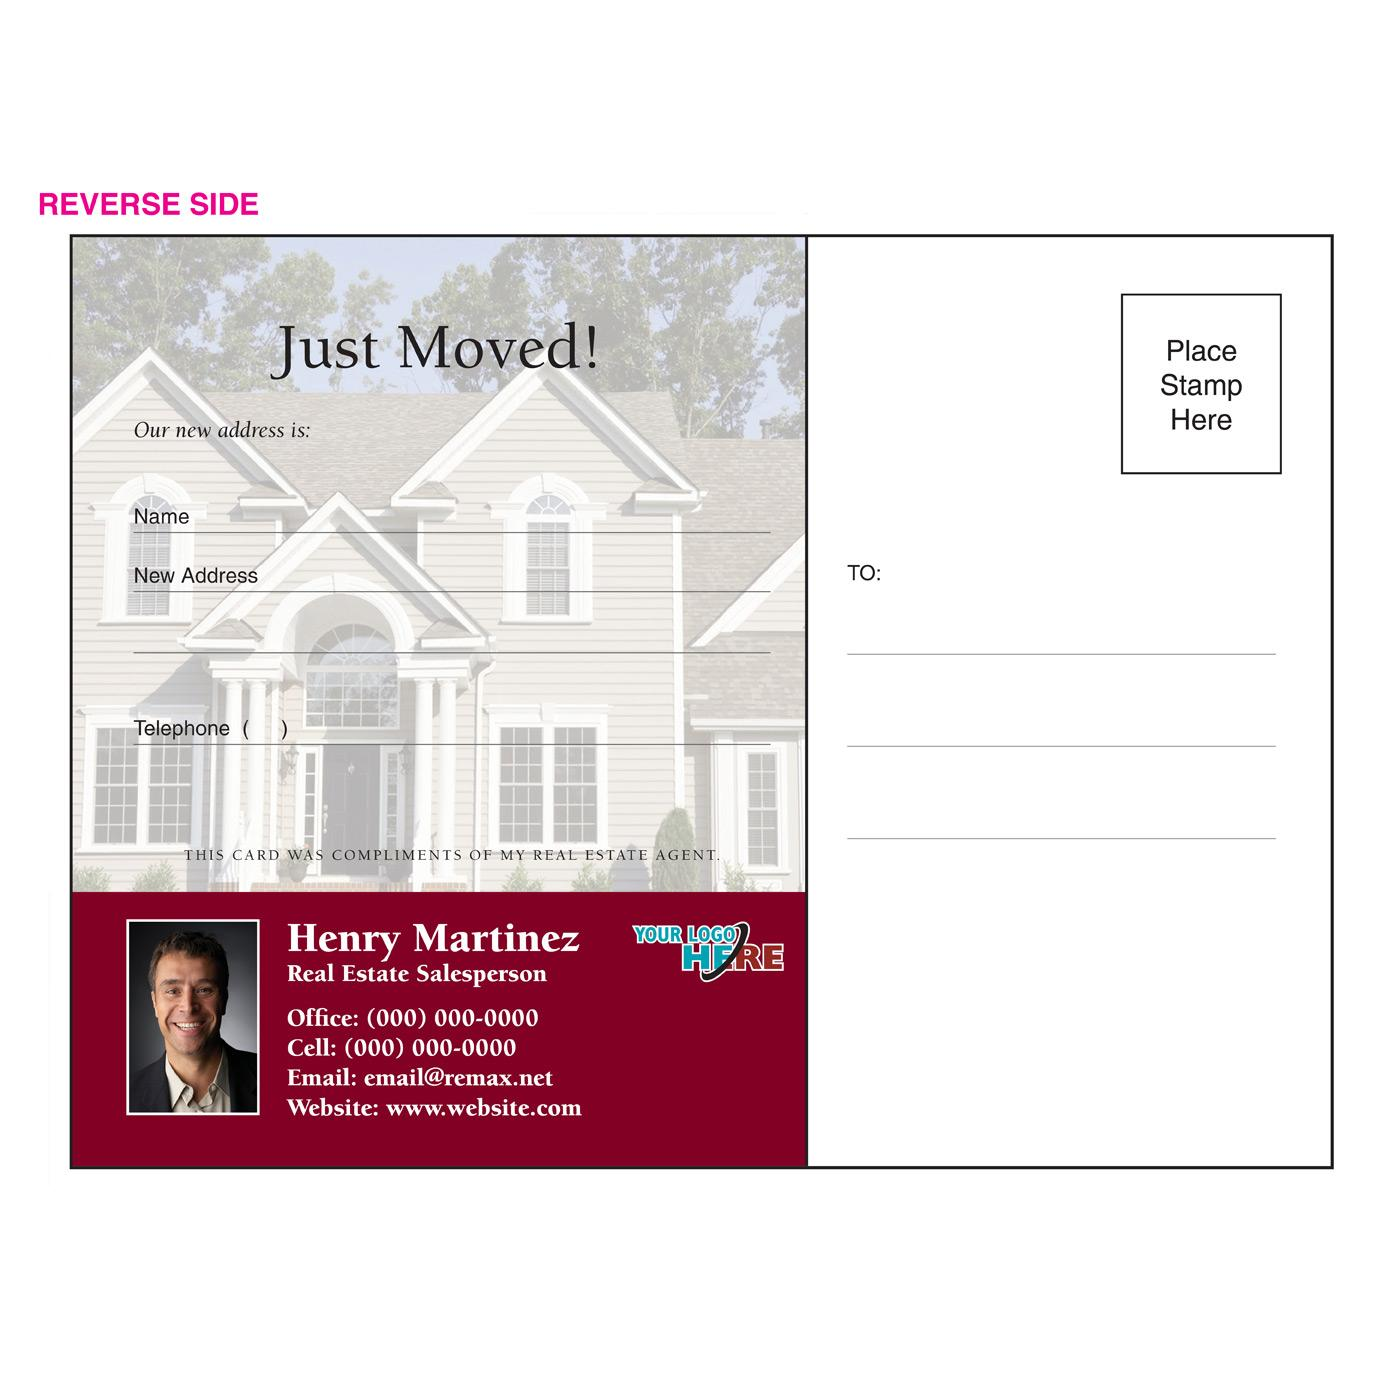 We've Moved Yard Sign Postcard